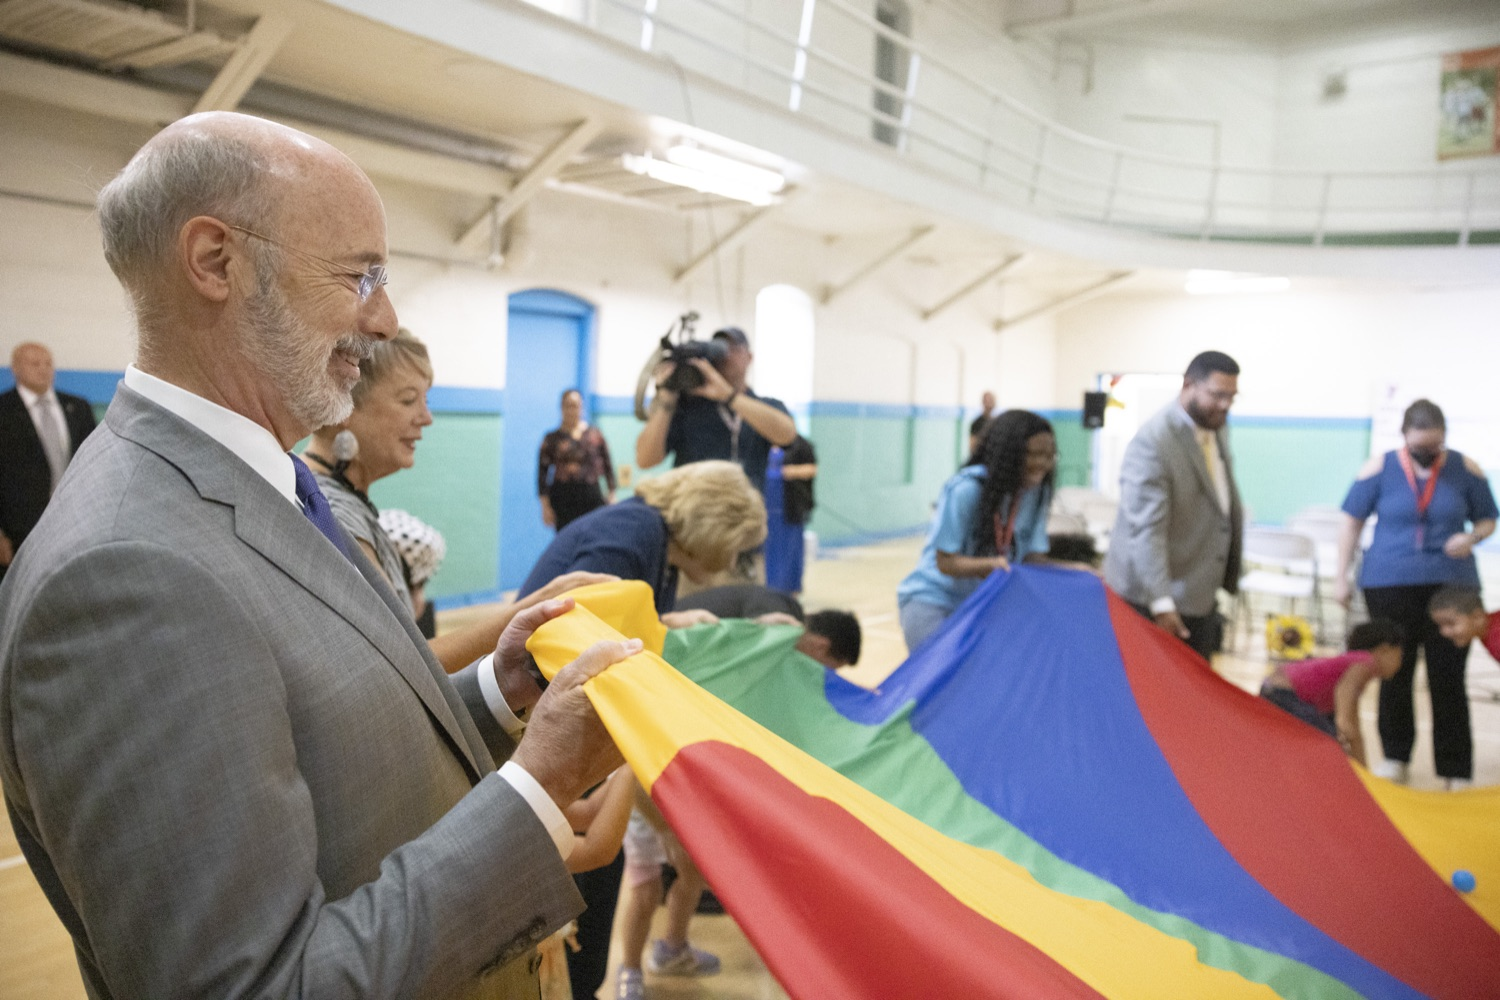 """<a href=""""https://filesource.wostreaming.net/commonwealthofpa/photo/18940_gov_childhooded_dz_021.jpg"""" target=""""_blank"""">⇣Download Photo<br></a>Governor Tom Wolf today was joined by advocates and legislative members to celebrate the $30 million increase in early childhood education funding in the state budget at the YMCA in Reading. This new funding will allow an additional 3,270 children to enroll in the states high-quality early learning programs.  Reading, PA - July 19, 2021"""